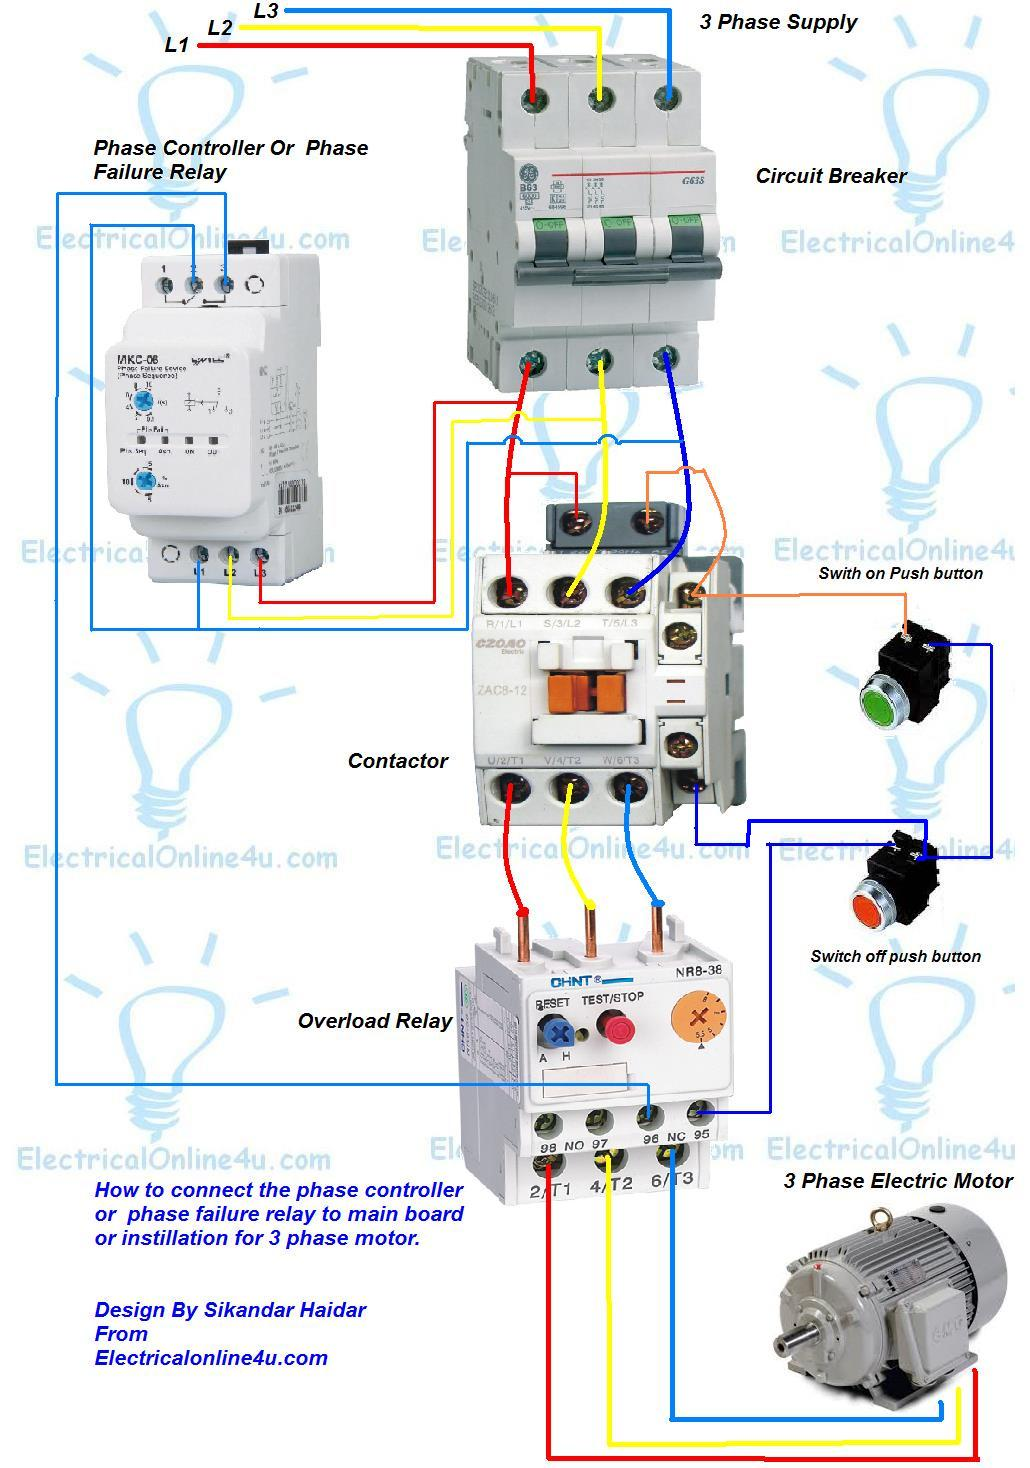 Phase%2Bfailure%2Brelay%2B %2Bphase%2Bcontroller%2Binstilaion%2Bin%2B3%2Bphase%2BMain%2Bboard%2Bor%2Bfor%2B3%2Bphase%2Bmotor phase controller wiring phase failure relay diagram electrical relay wiring diagrams at crackthecode.co